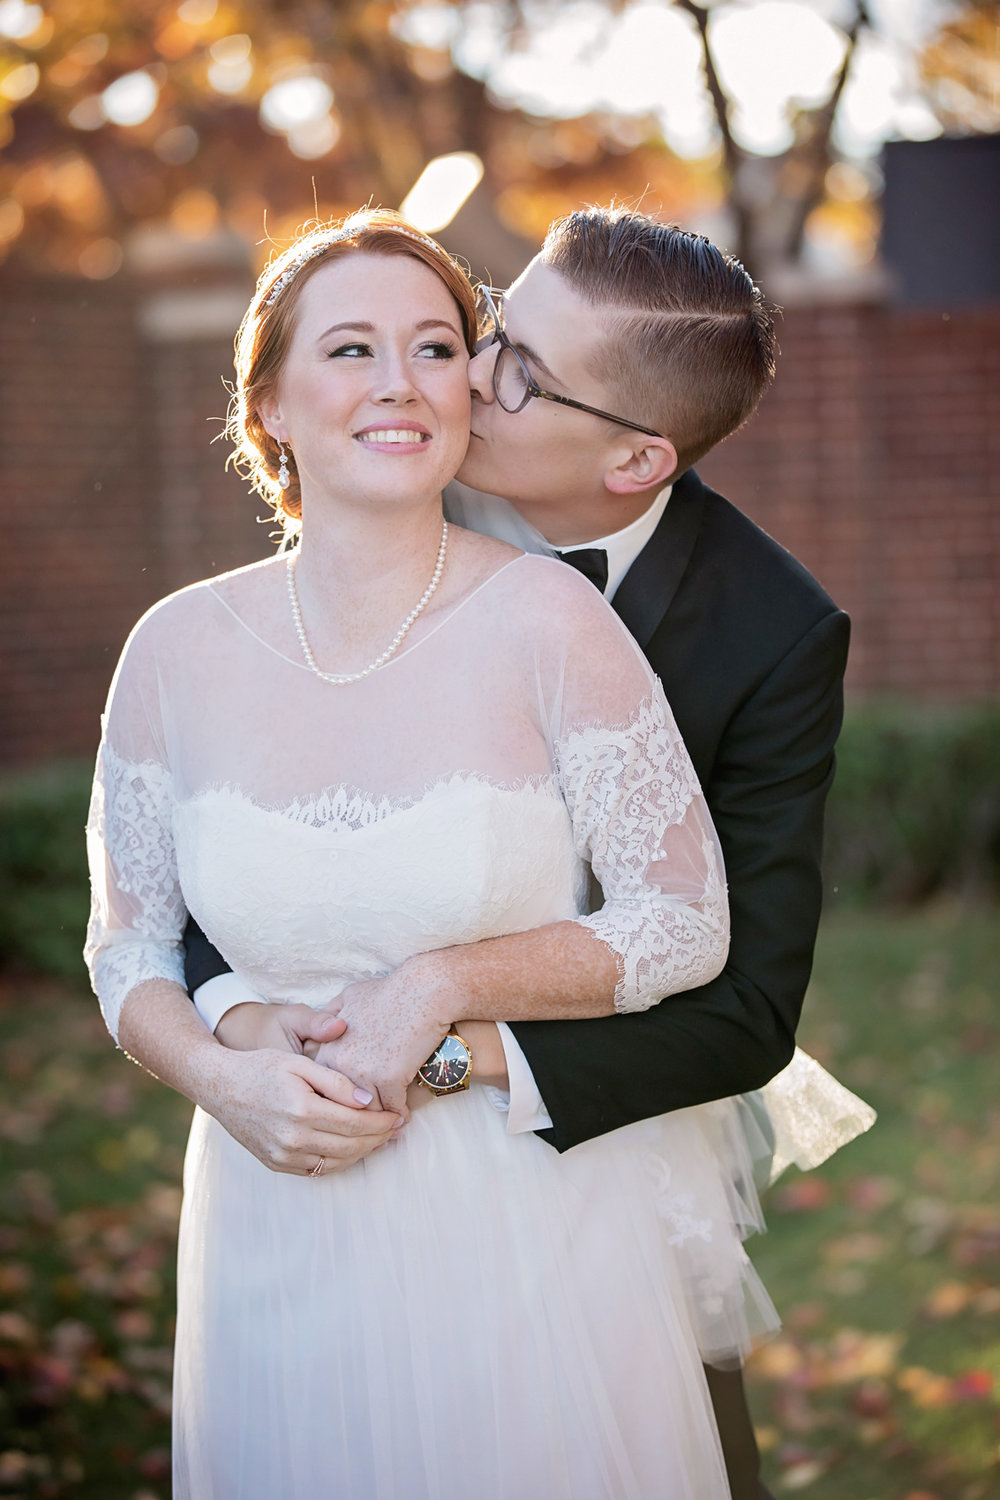 Bride and groom hugging with groom kissing bride on the cheek in Oklahoma City by Amanda Lynn.